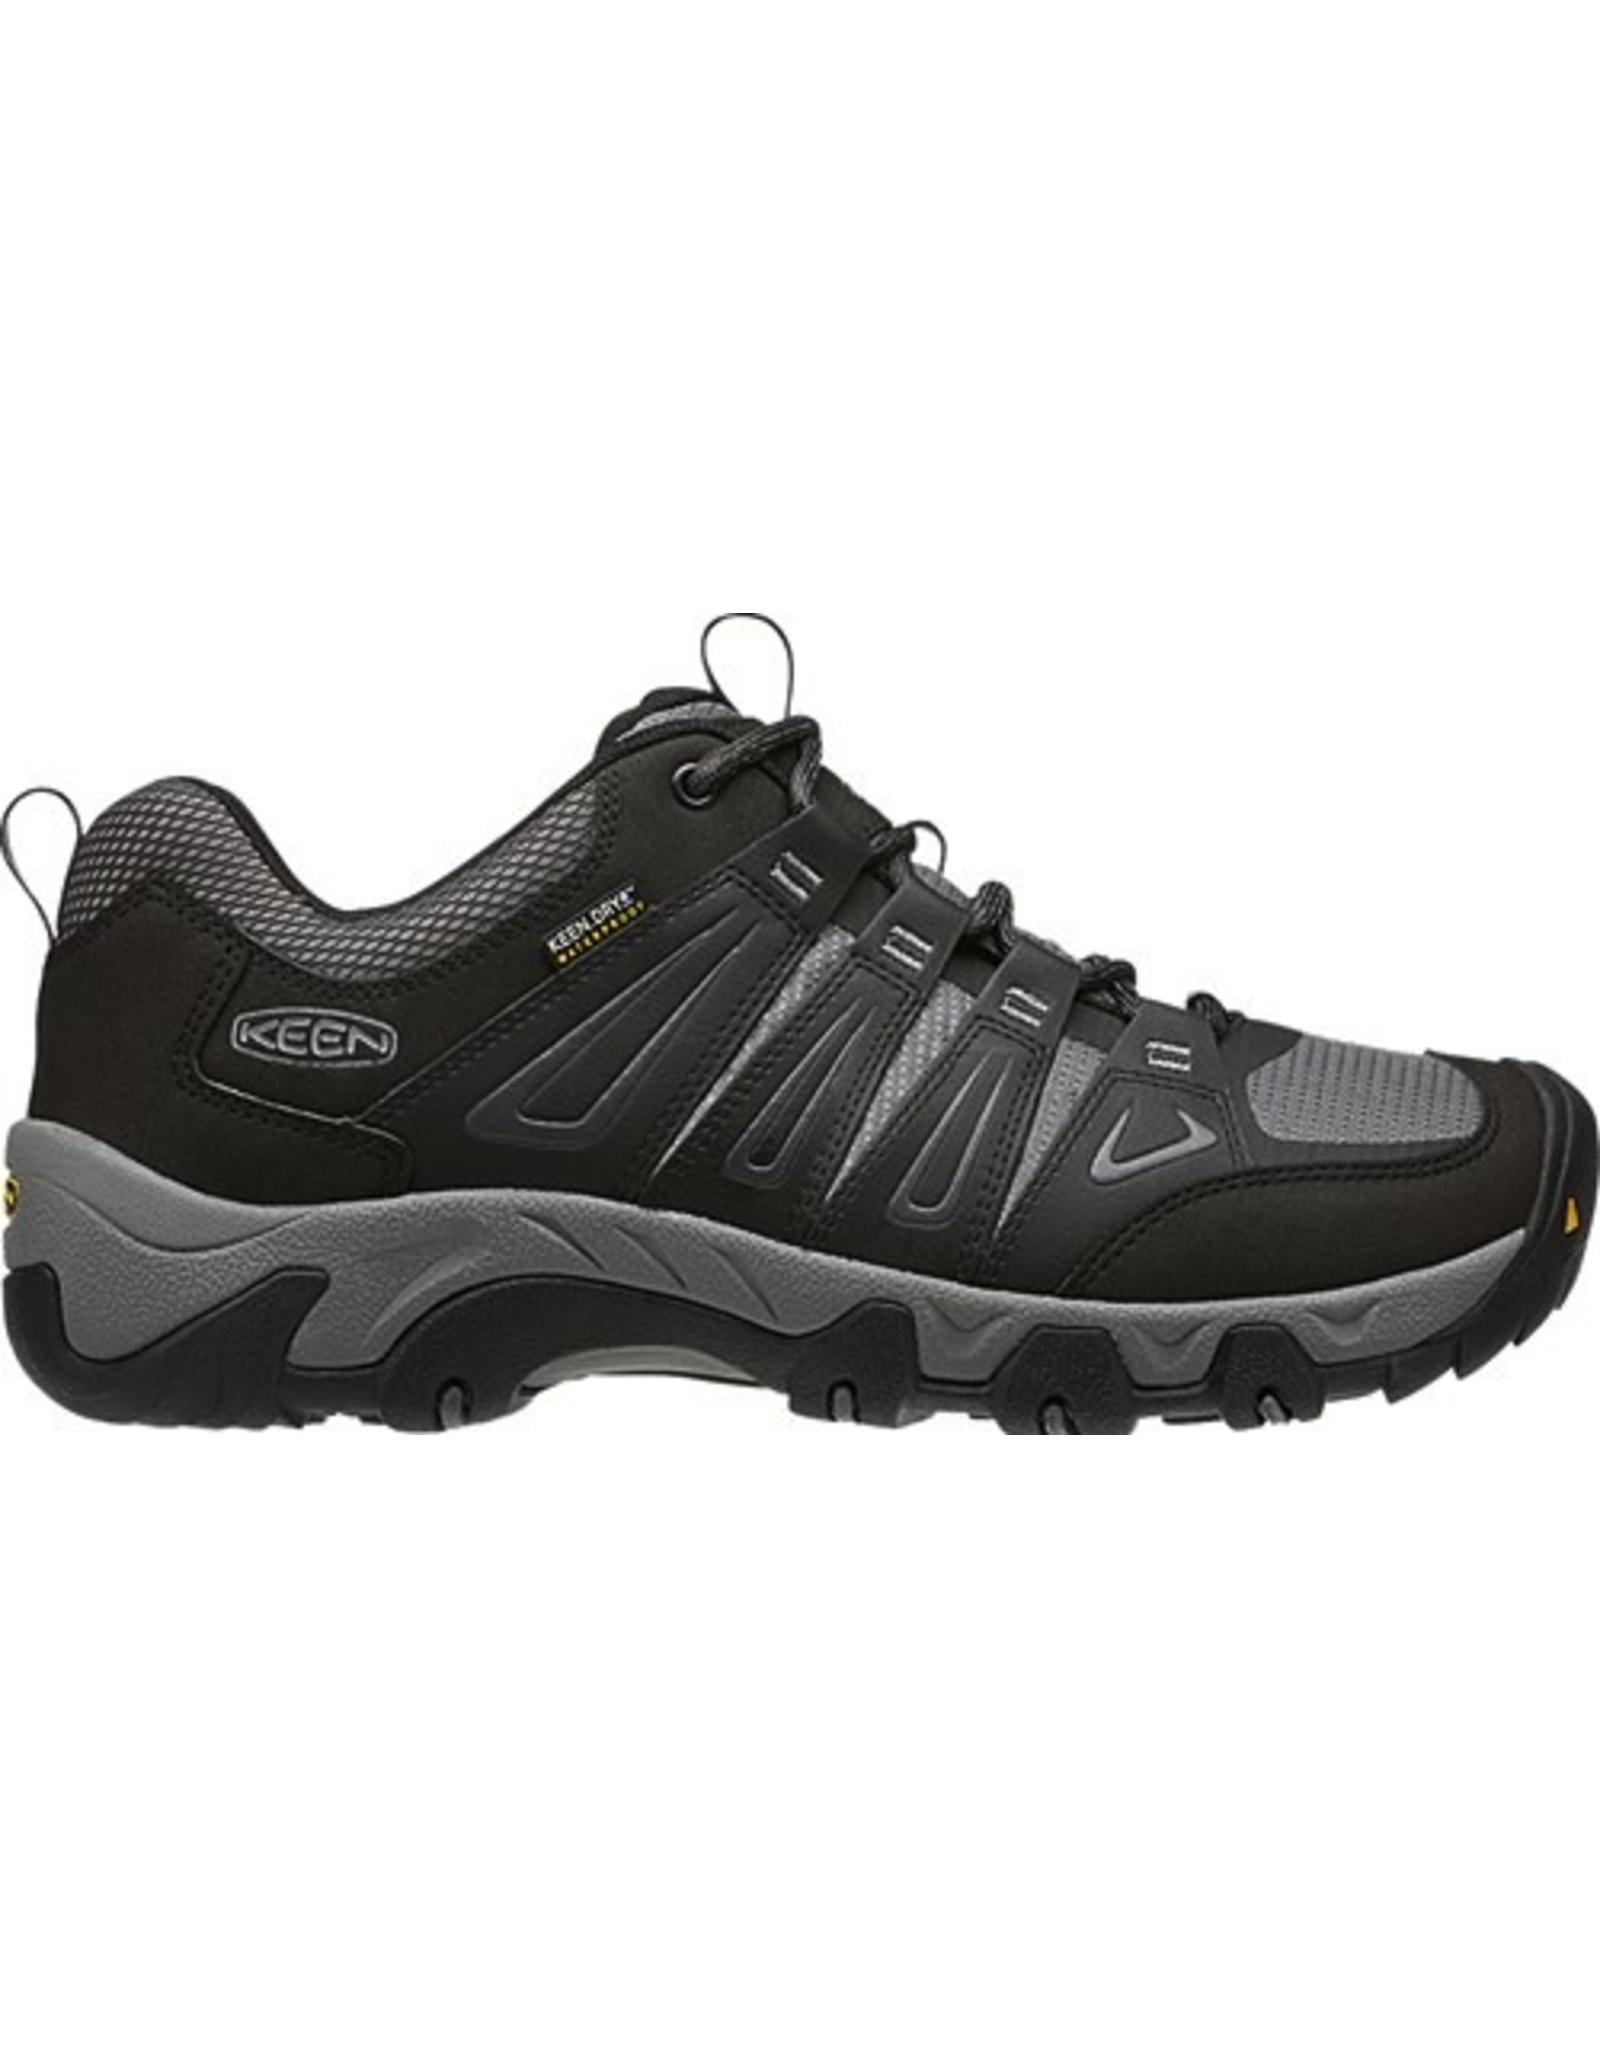 Keen Keen Mens Oakridge Waterproof Shoe